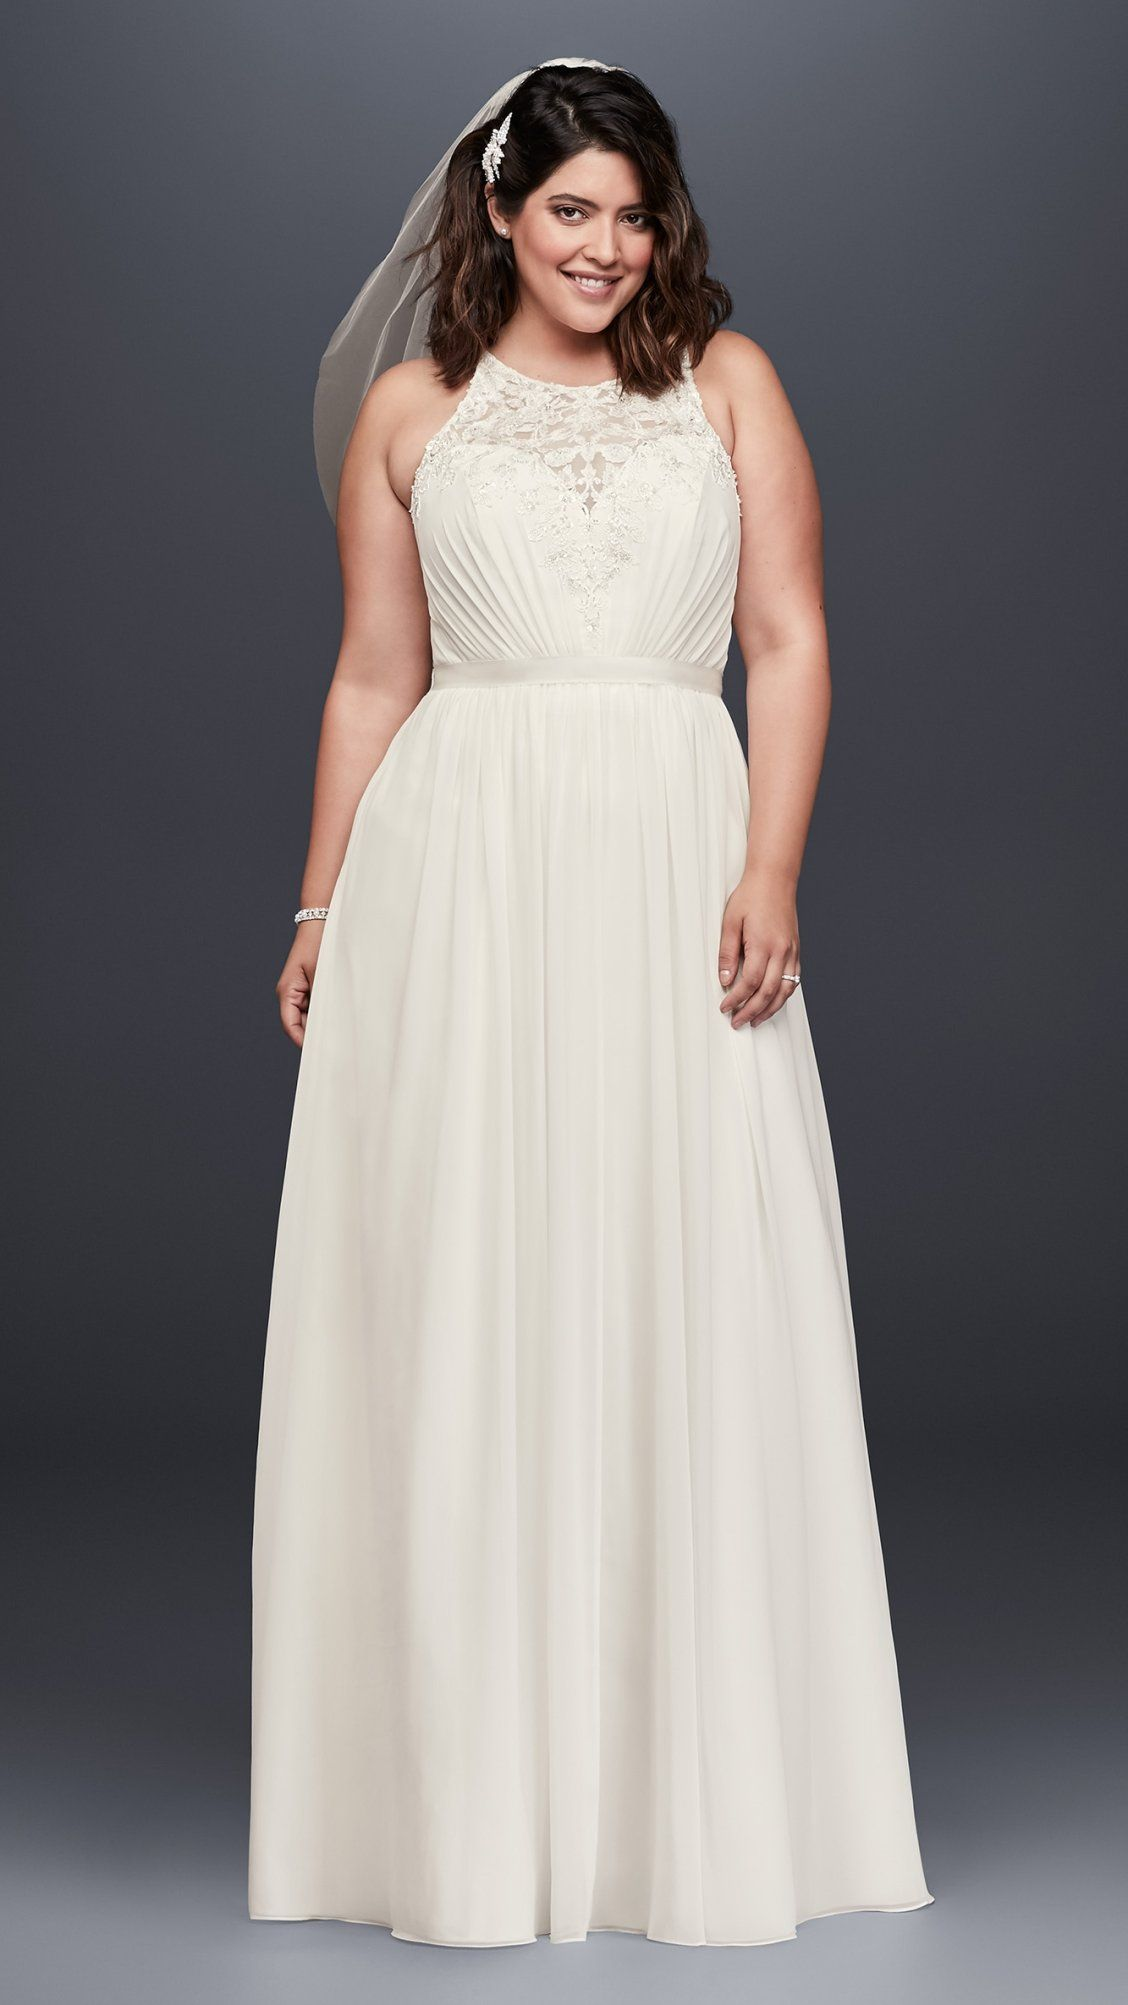 Beaded Chiffon Halter Plus Size Wedding Dress David S Bridal Halter Wedding Dress Davids Bridal Wedding Dresses Plus Size Wedding Gowns